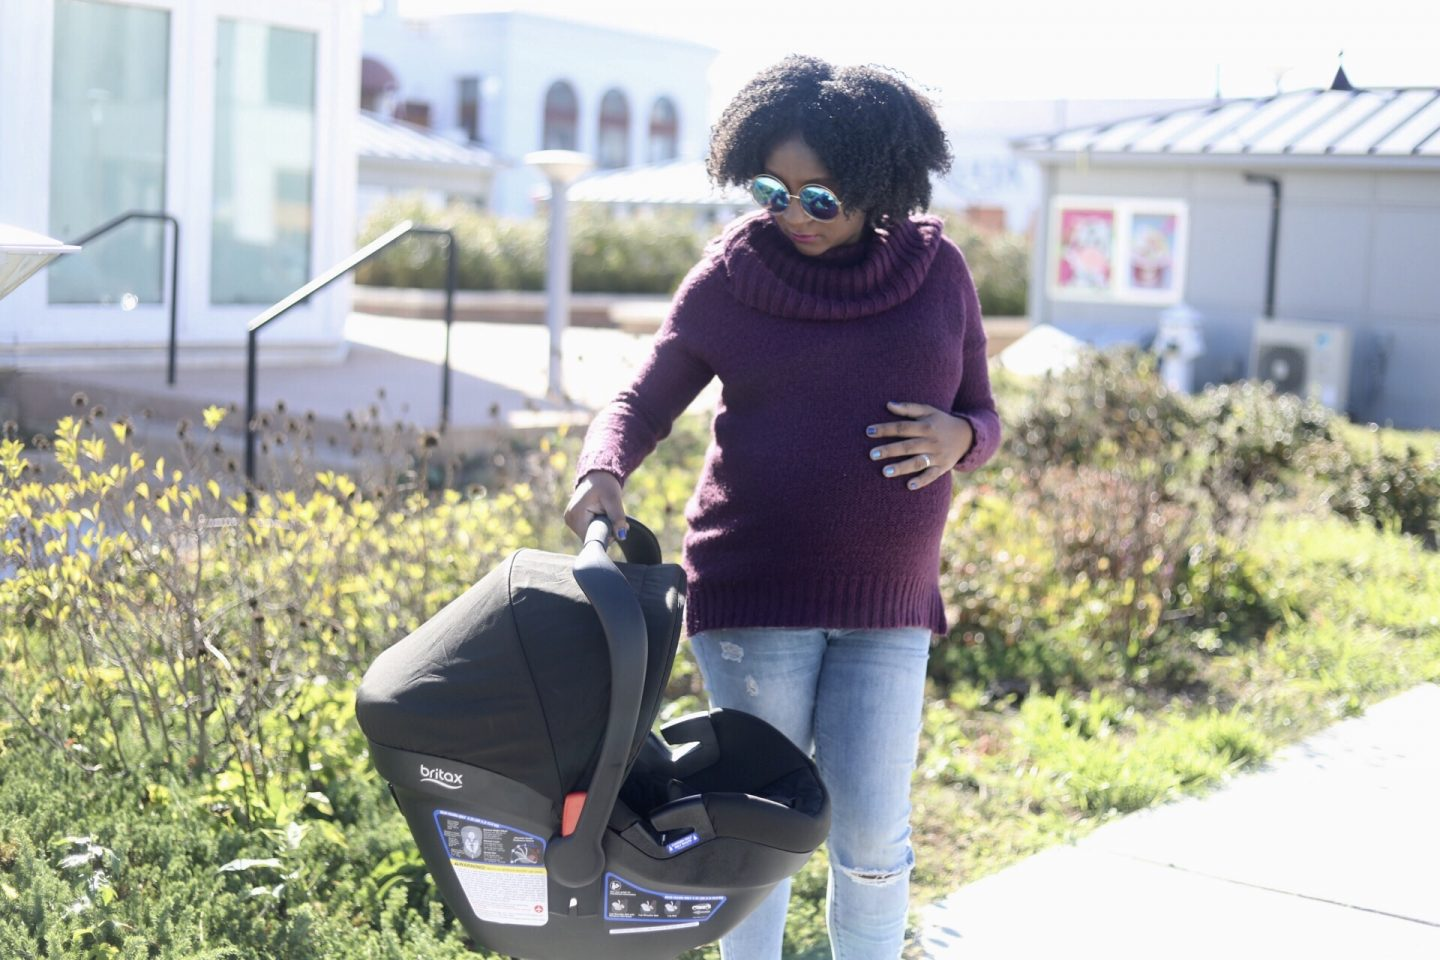 Safety on the go with Britax Endeavours (VIDEO)